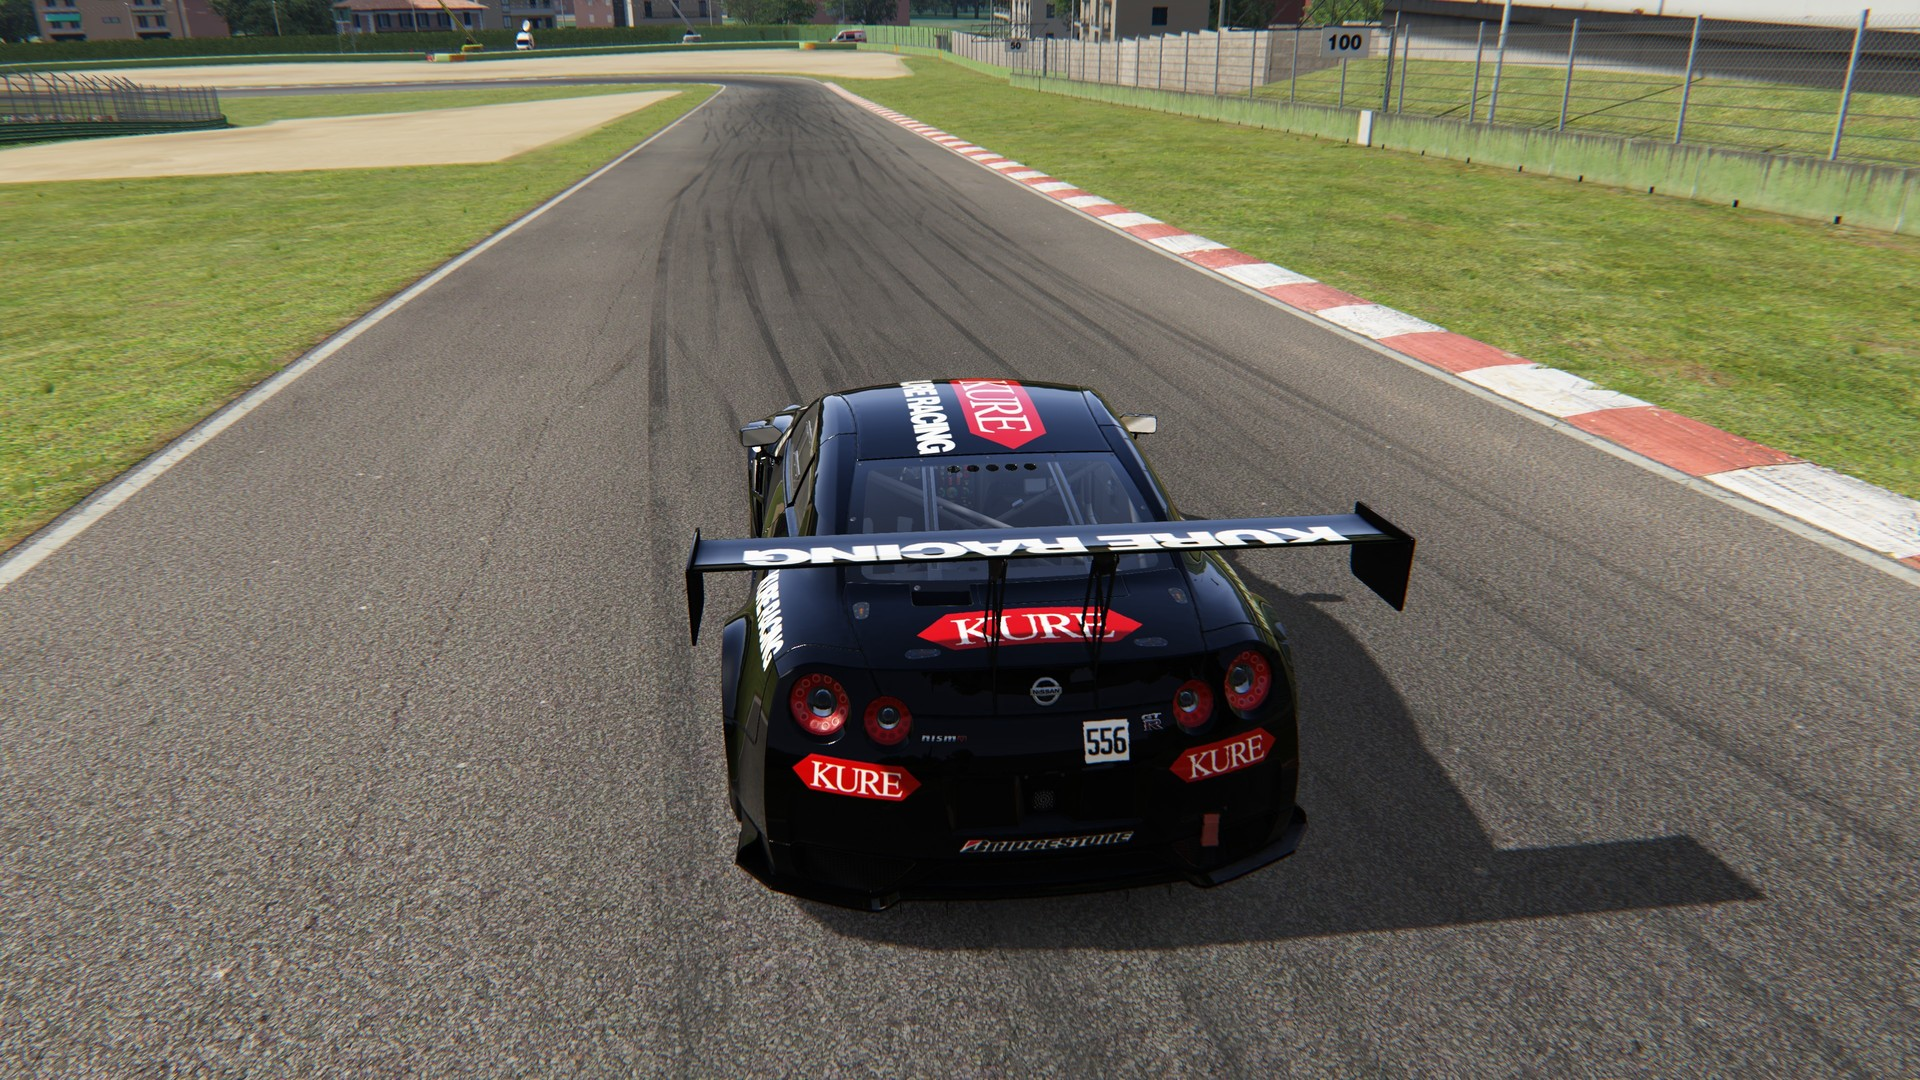 Screenshot_ks_nissan_gtr_gt3_imola_17-10-116-17-32-55.jpg